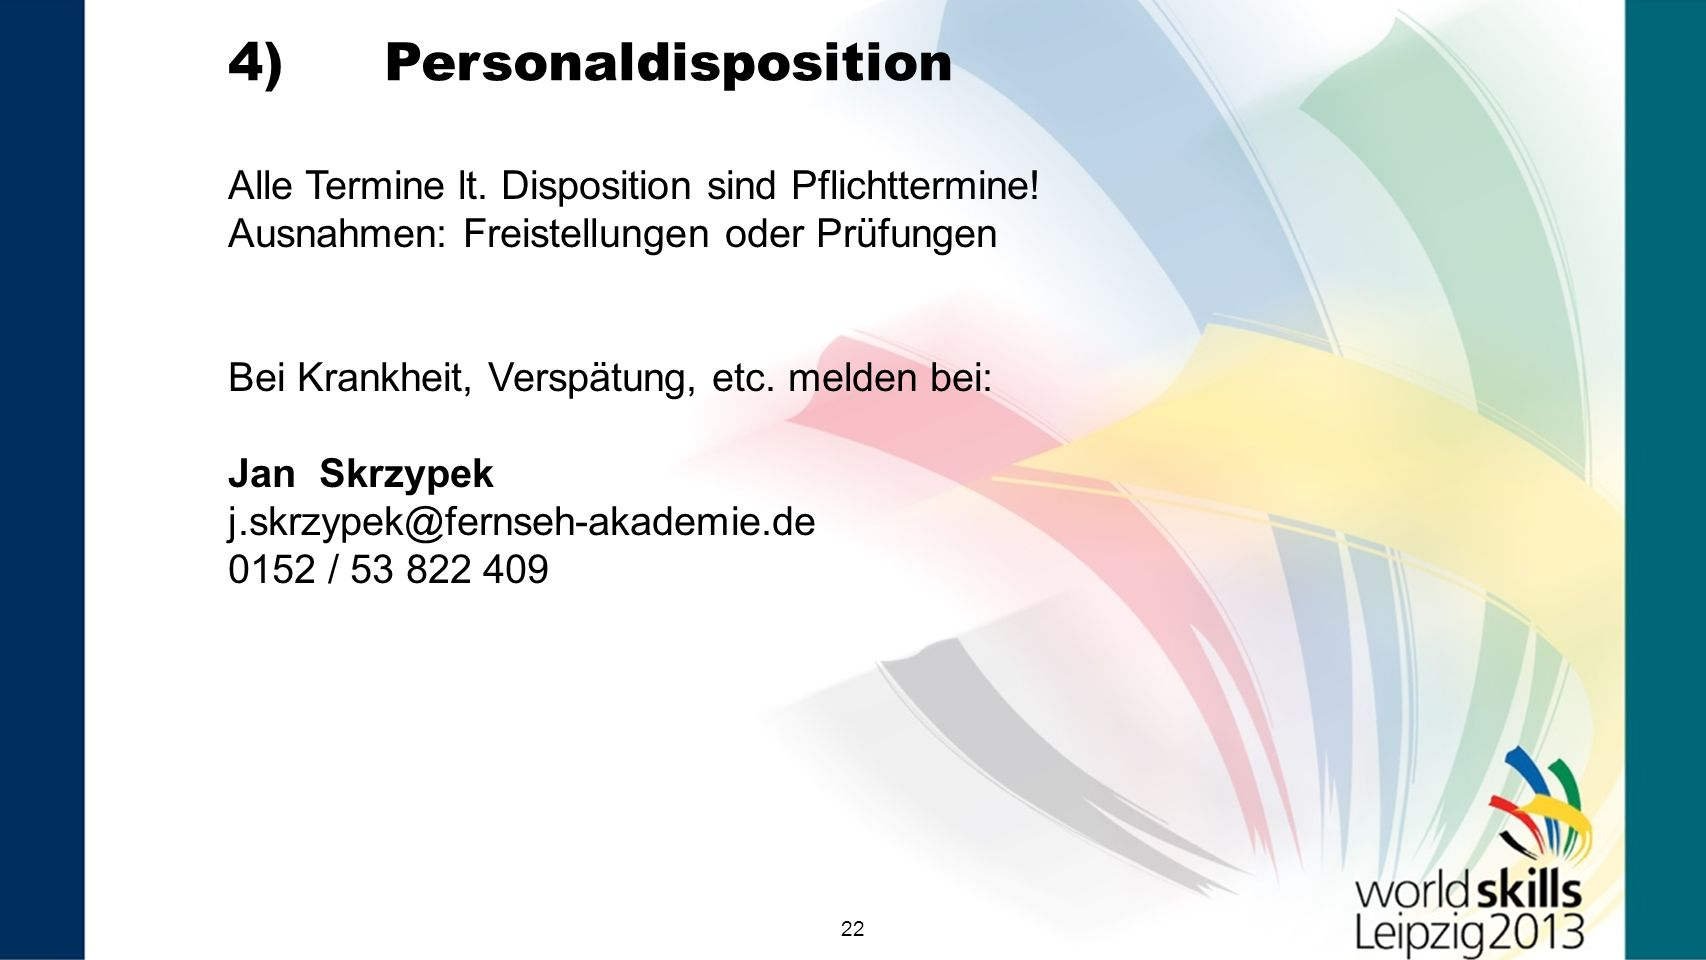 4) Personaldisposition